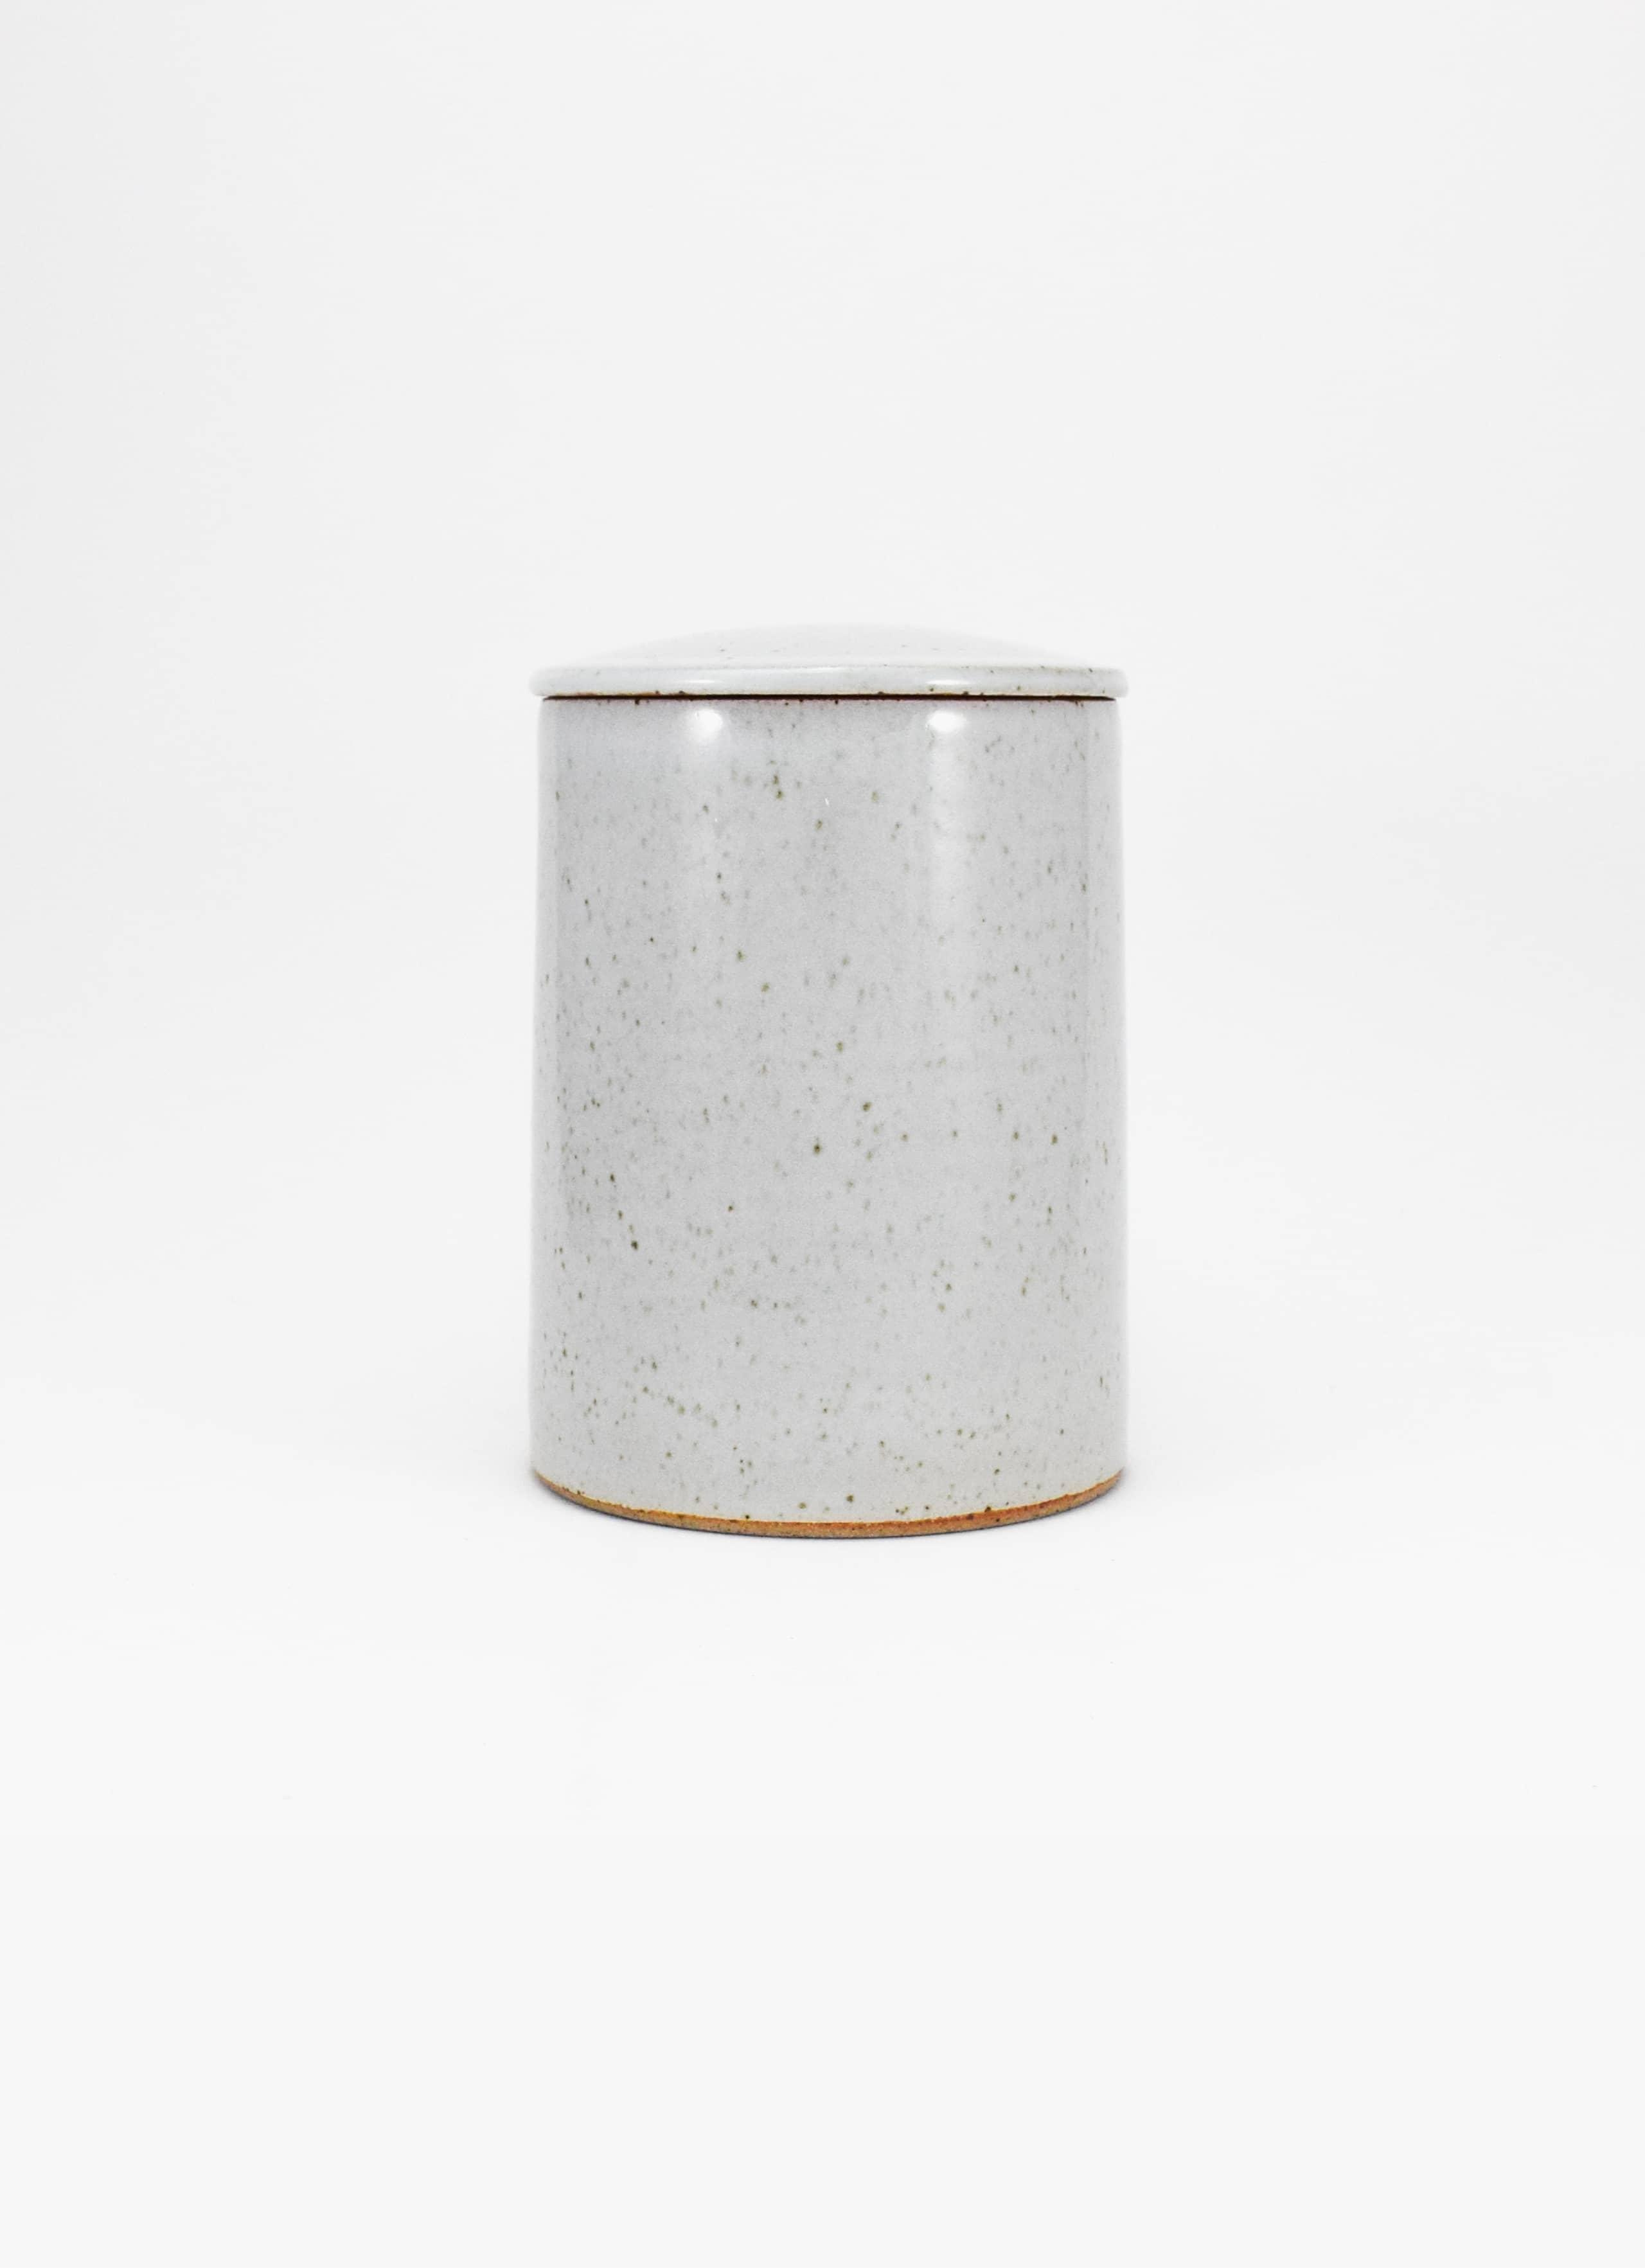 James and Tilla Waters - Thrown Stoneware - Lidded Jar - White glaze